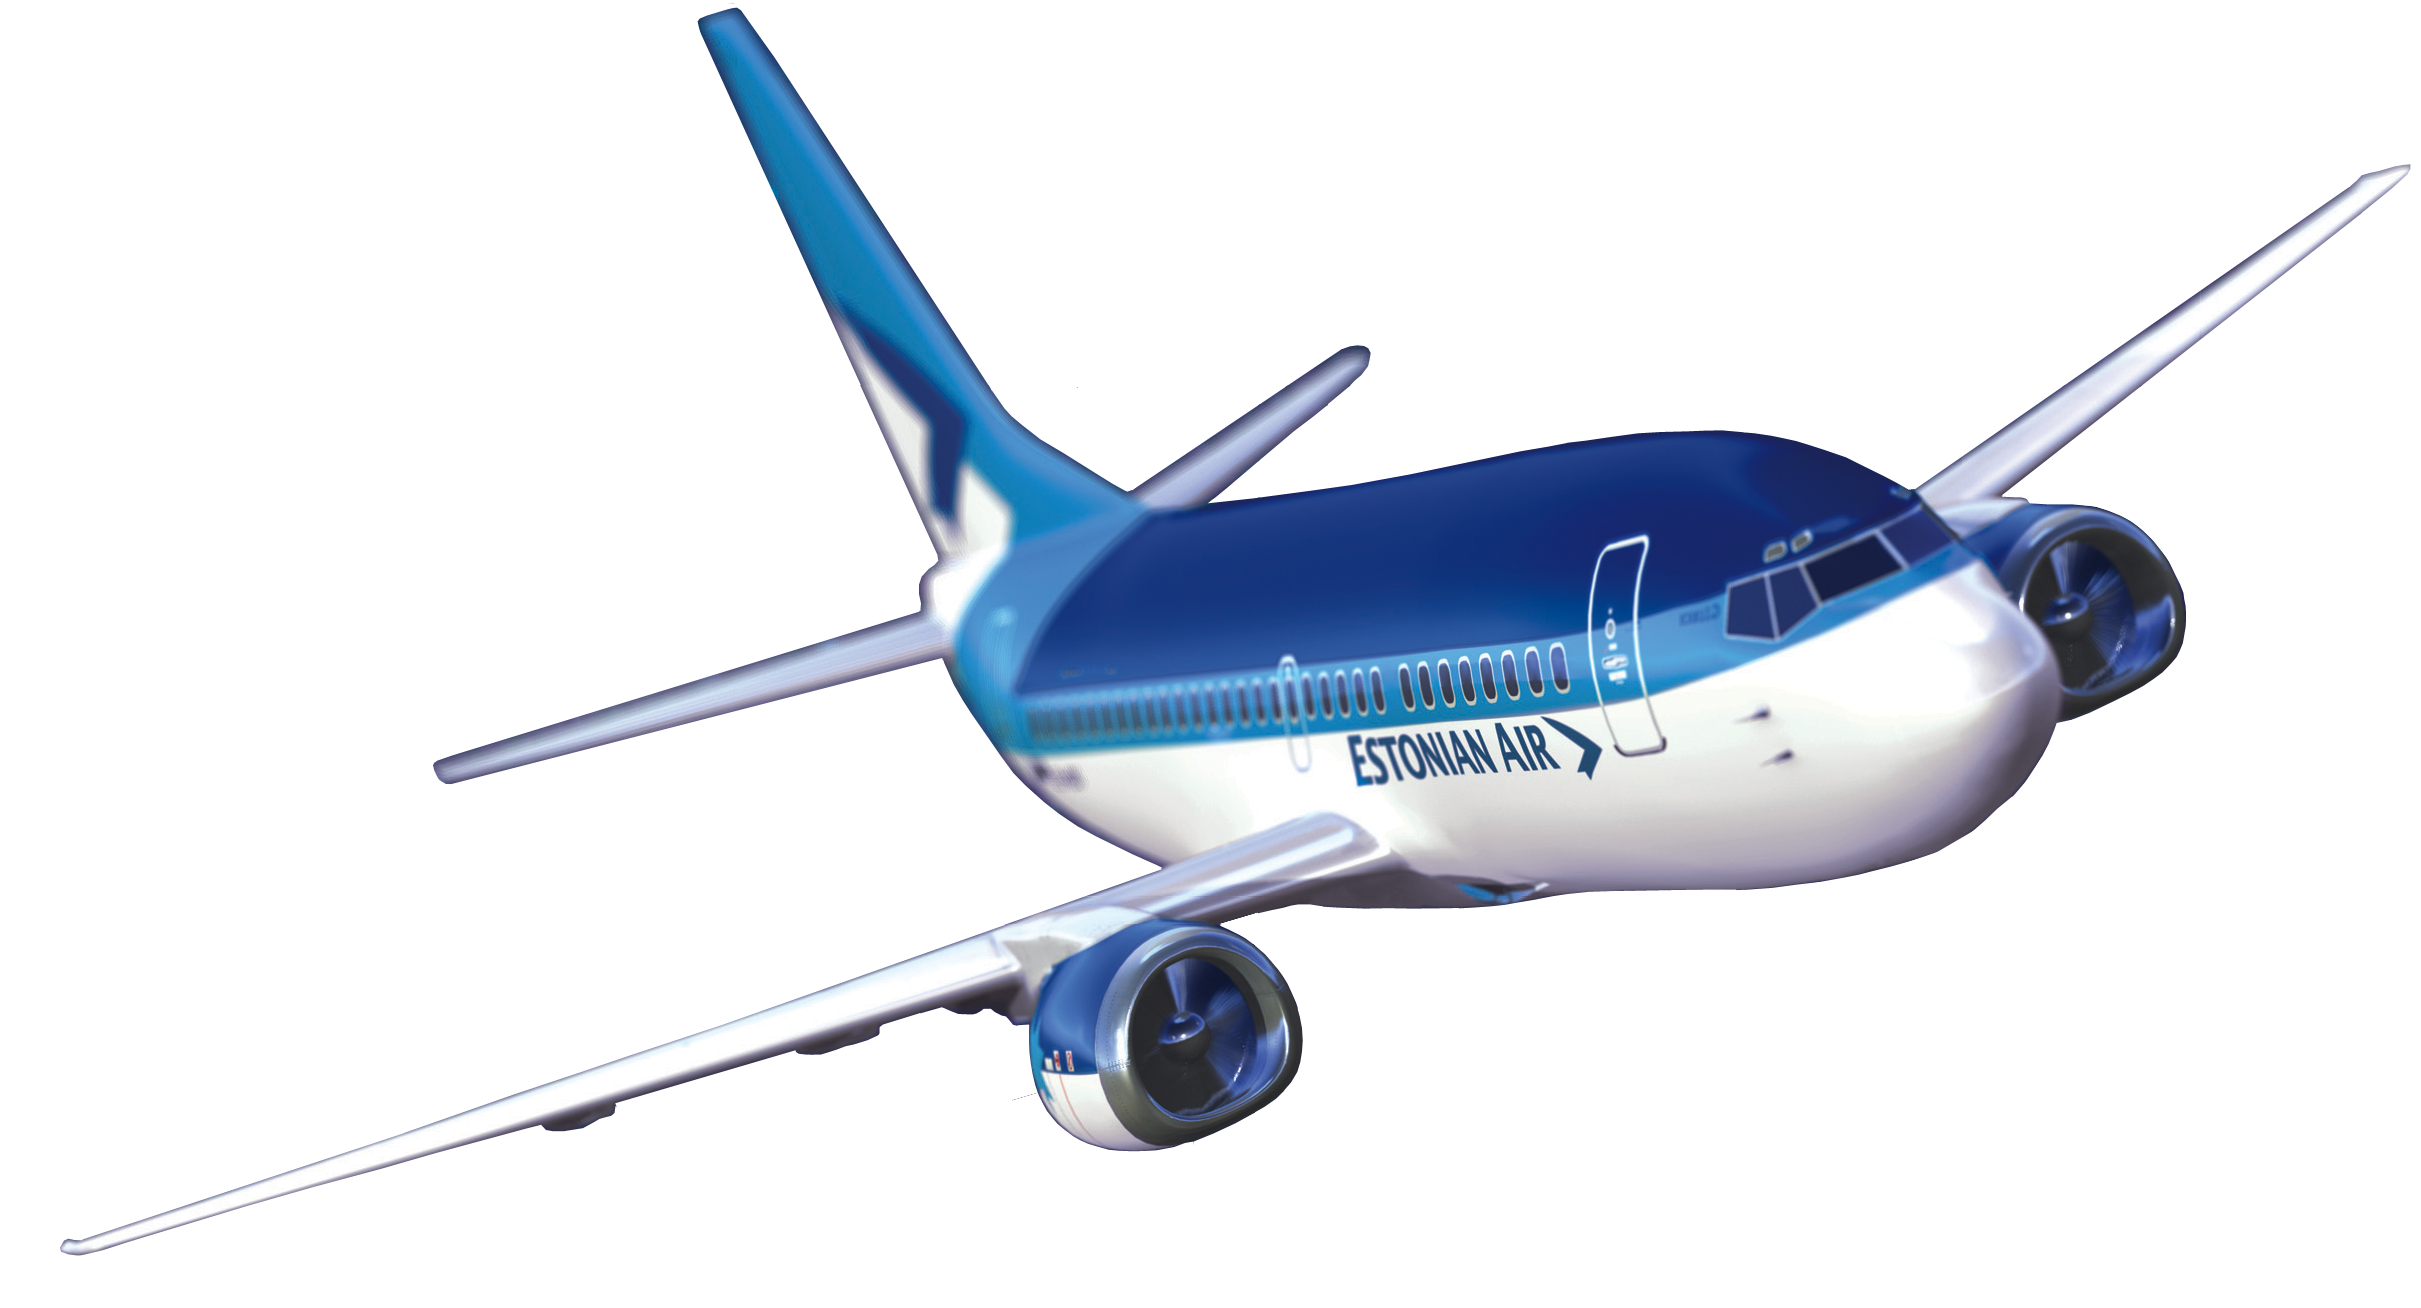 Download Blue Plane Png Image For Free